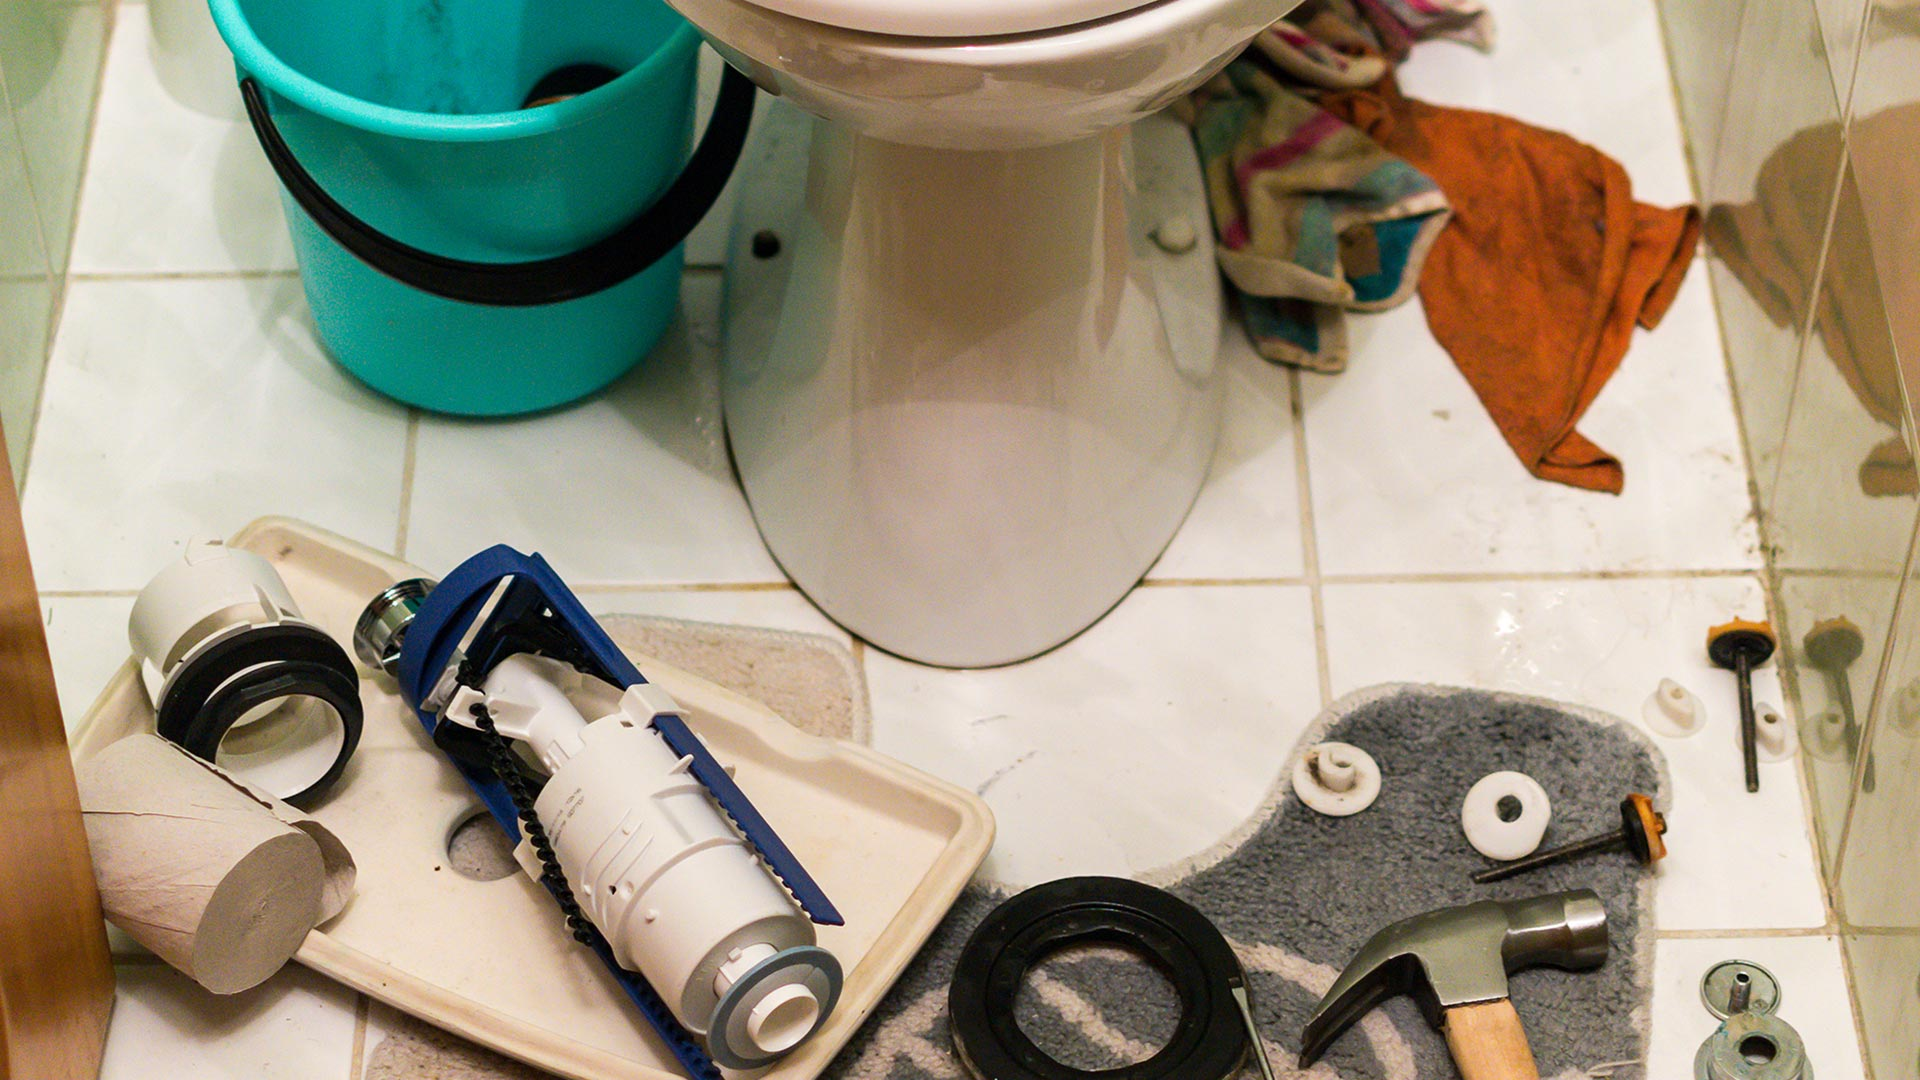 7 Plumbing Fixes Homeowners Attempt But Shouldn't